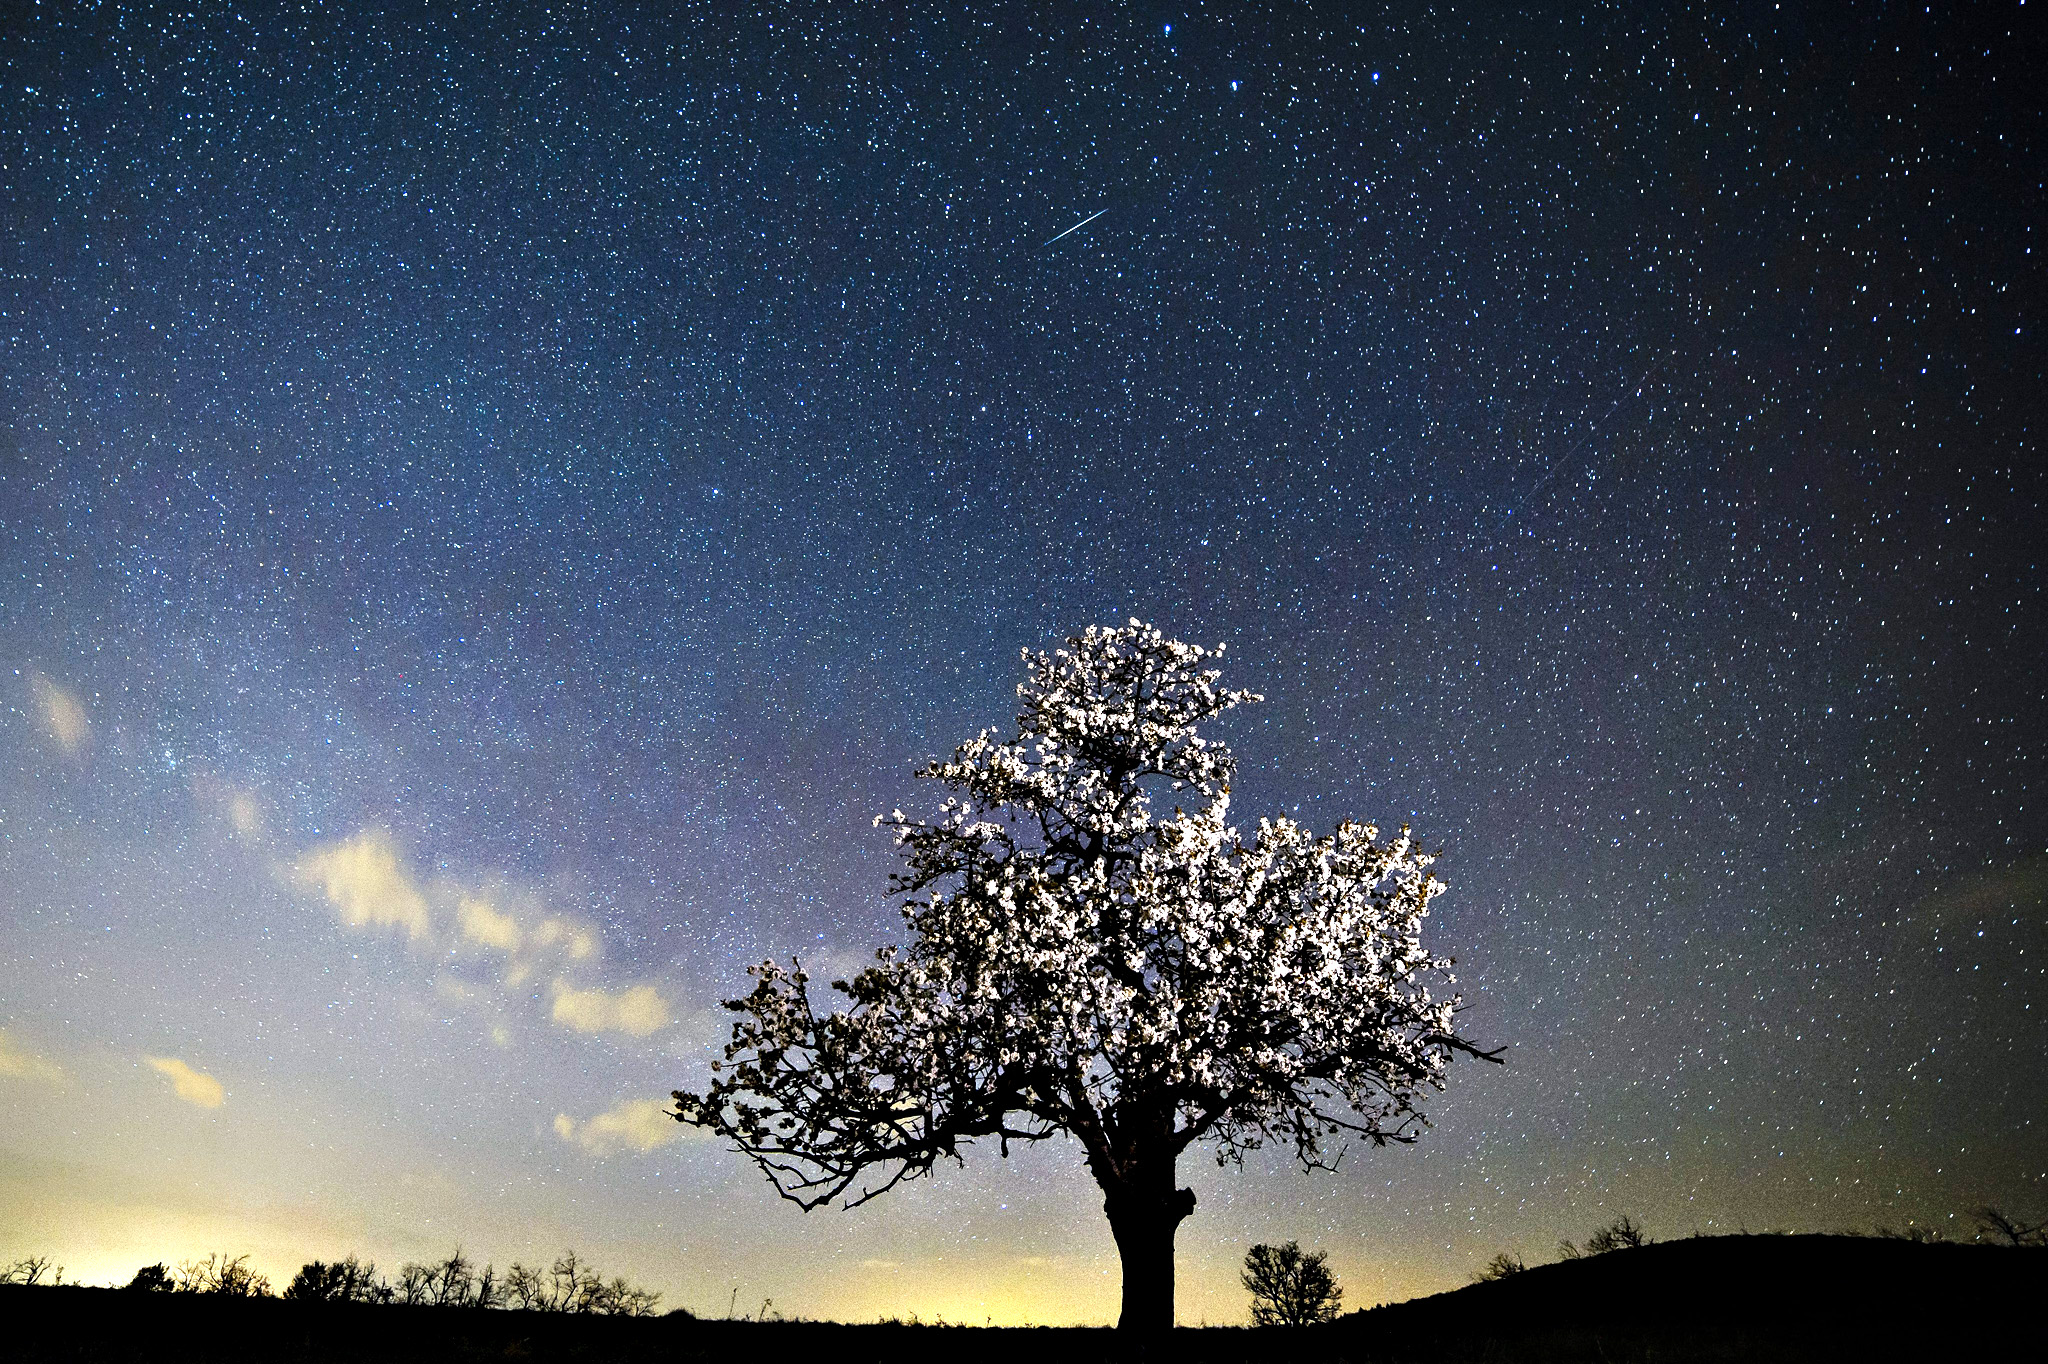 A meteorite burns up in the atmosphere, seen near Salgotarjan, 109 kms northeast of Budapest, Hungary